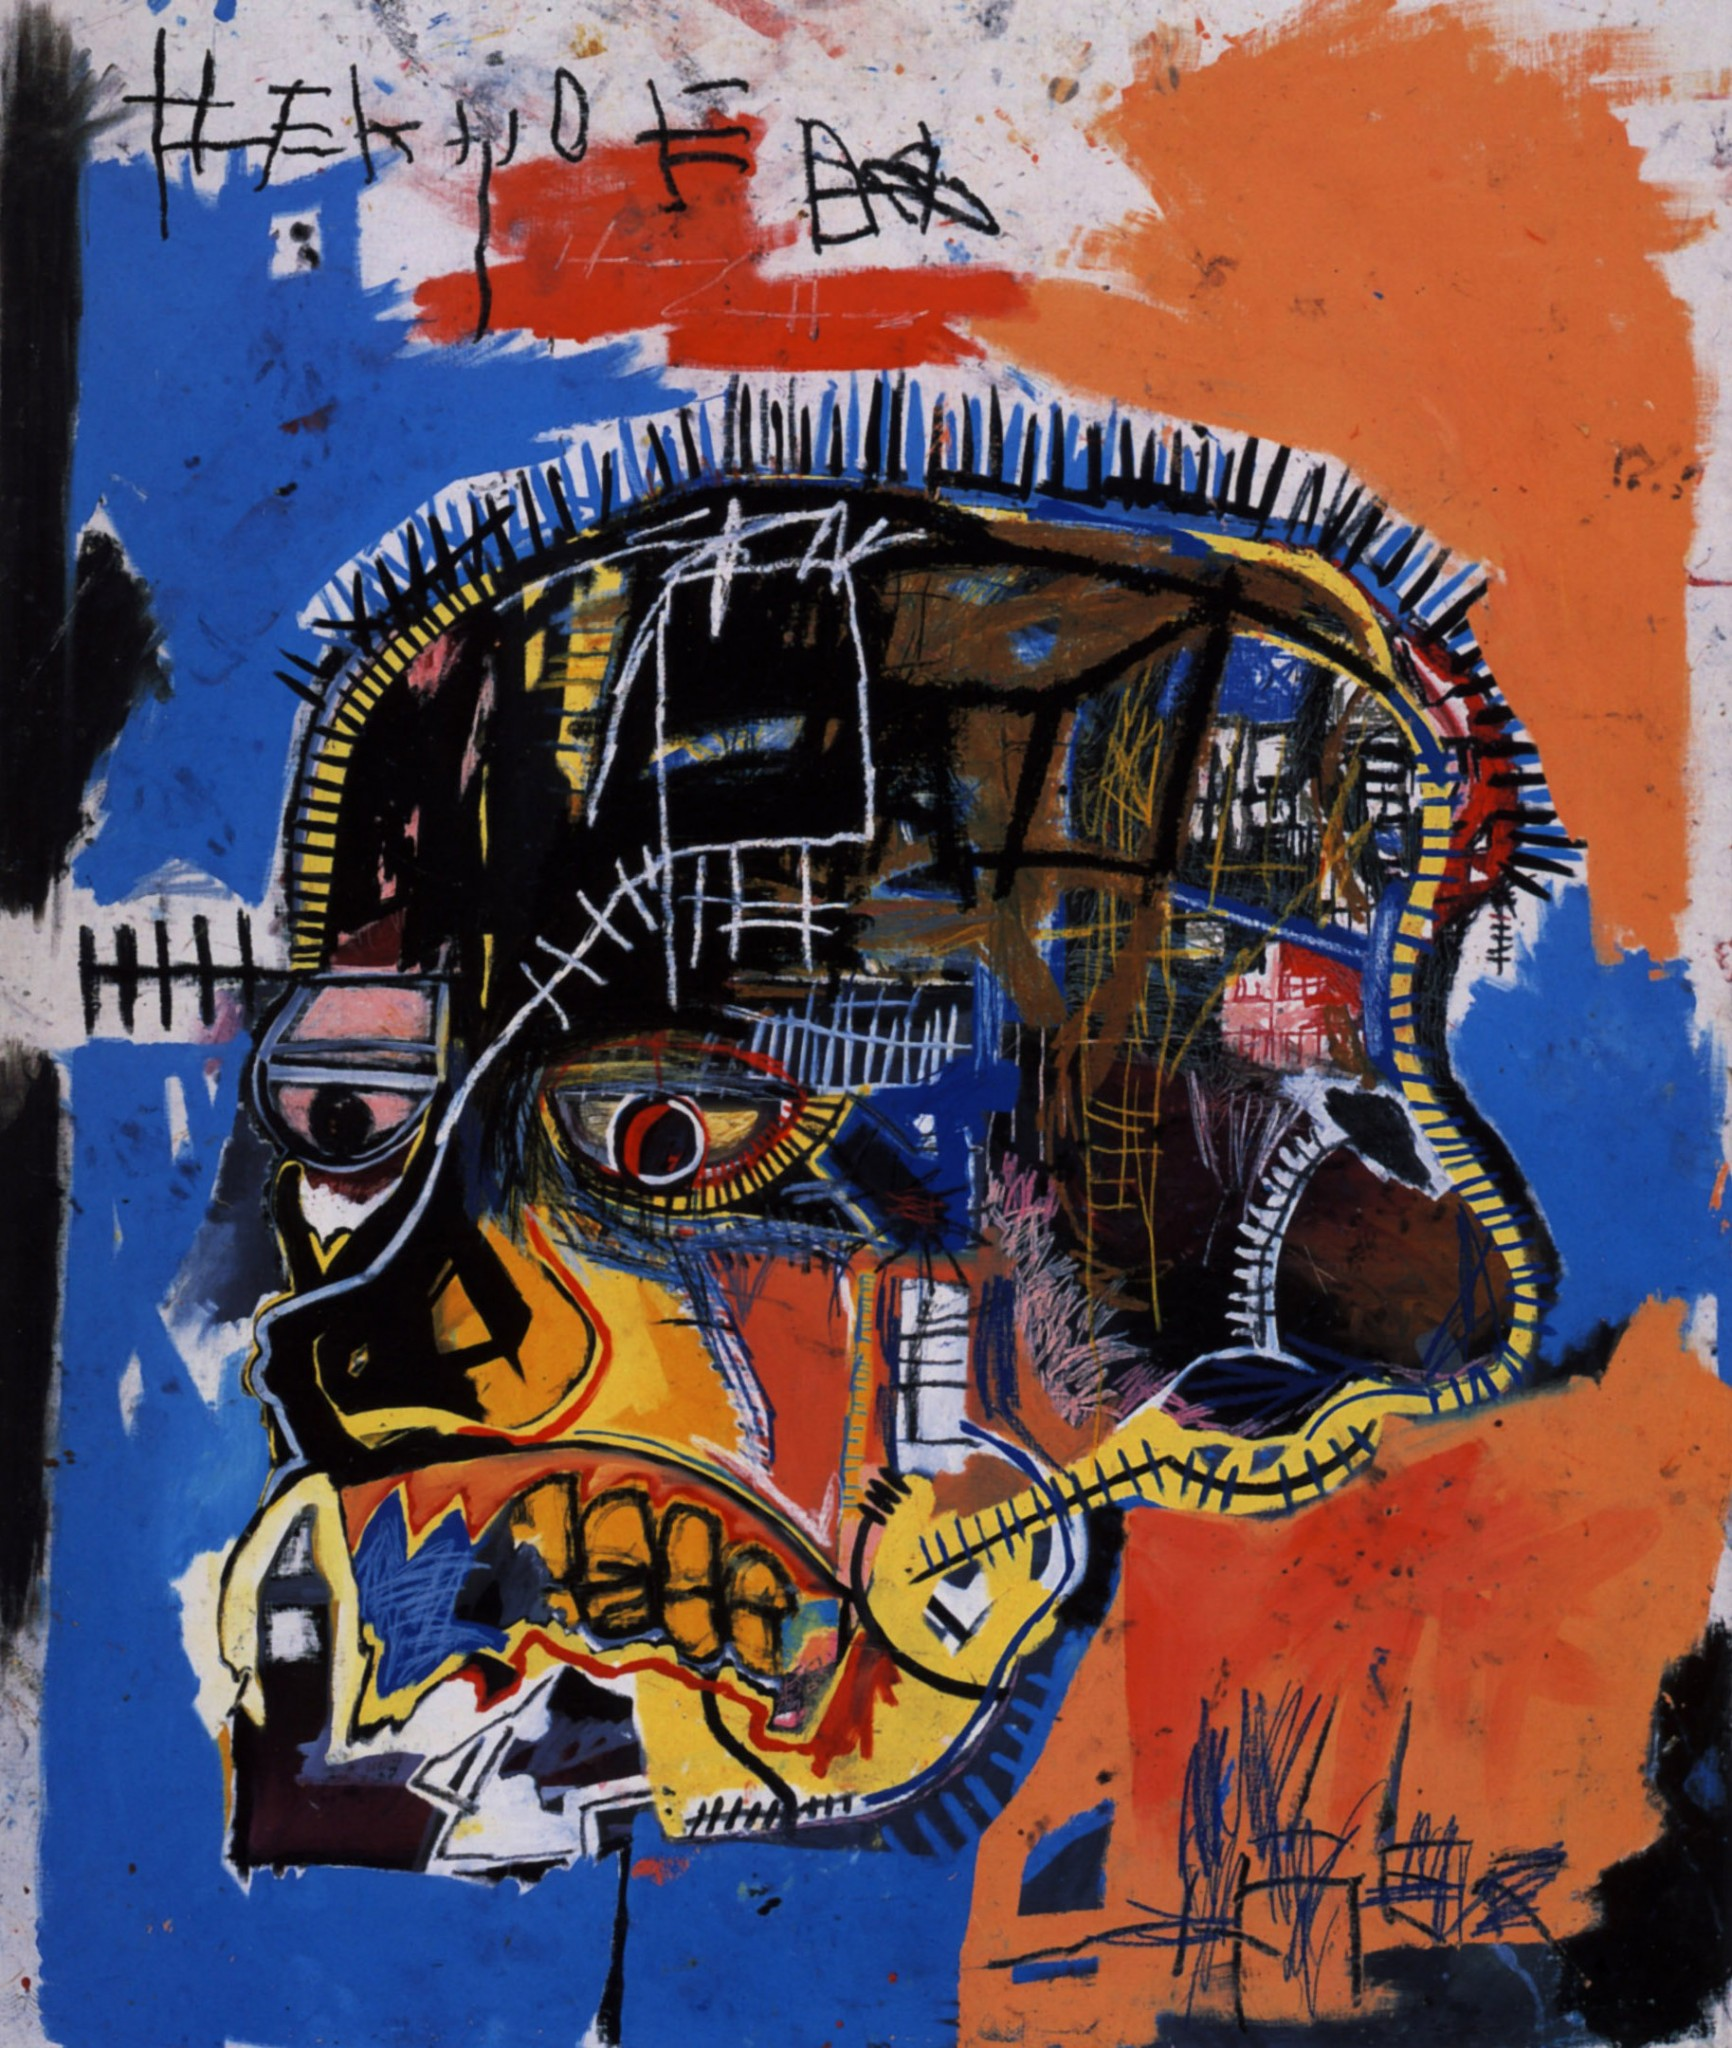 a biography of jean michel basquiat Jean-michel basquiat's painting of a skull sold for $1105 million at sotheby's in new york, setting an auction record for american artists and providing a windfall for the daughter of two.